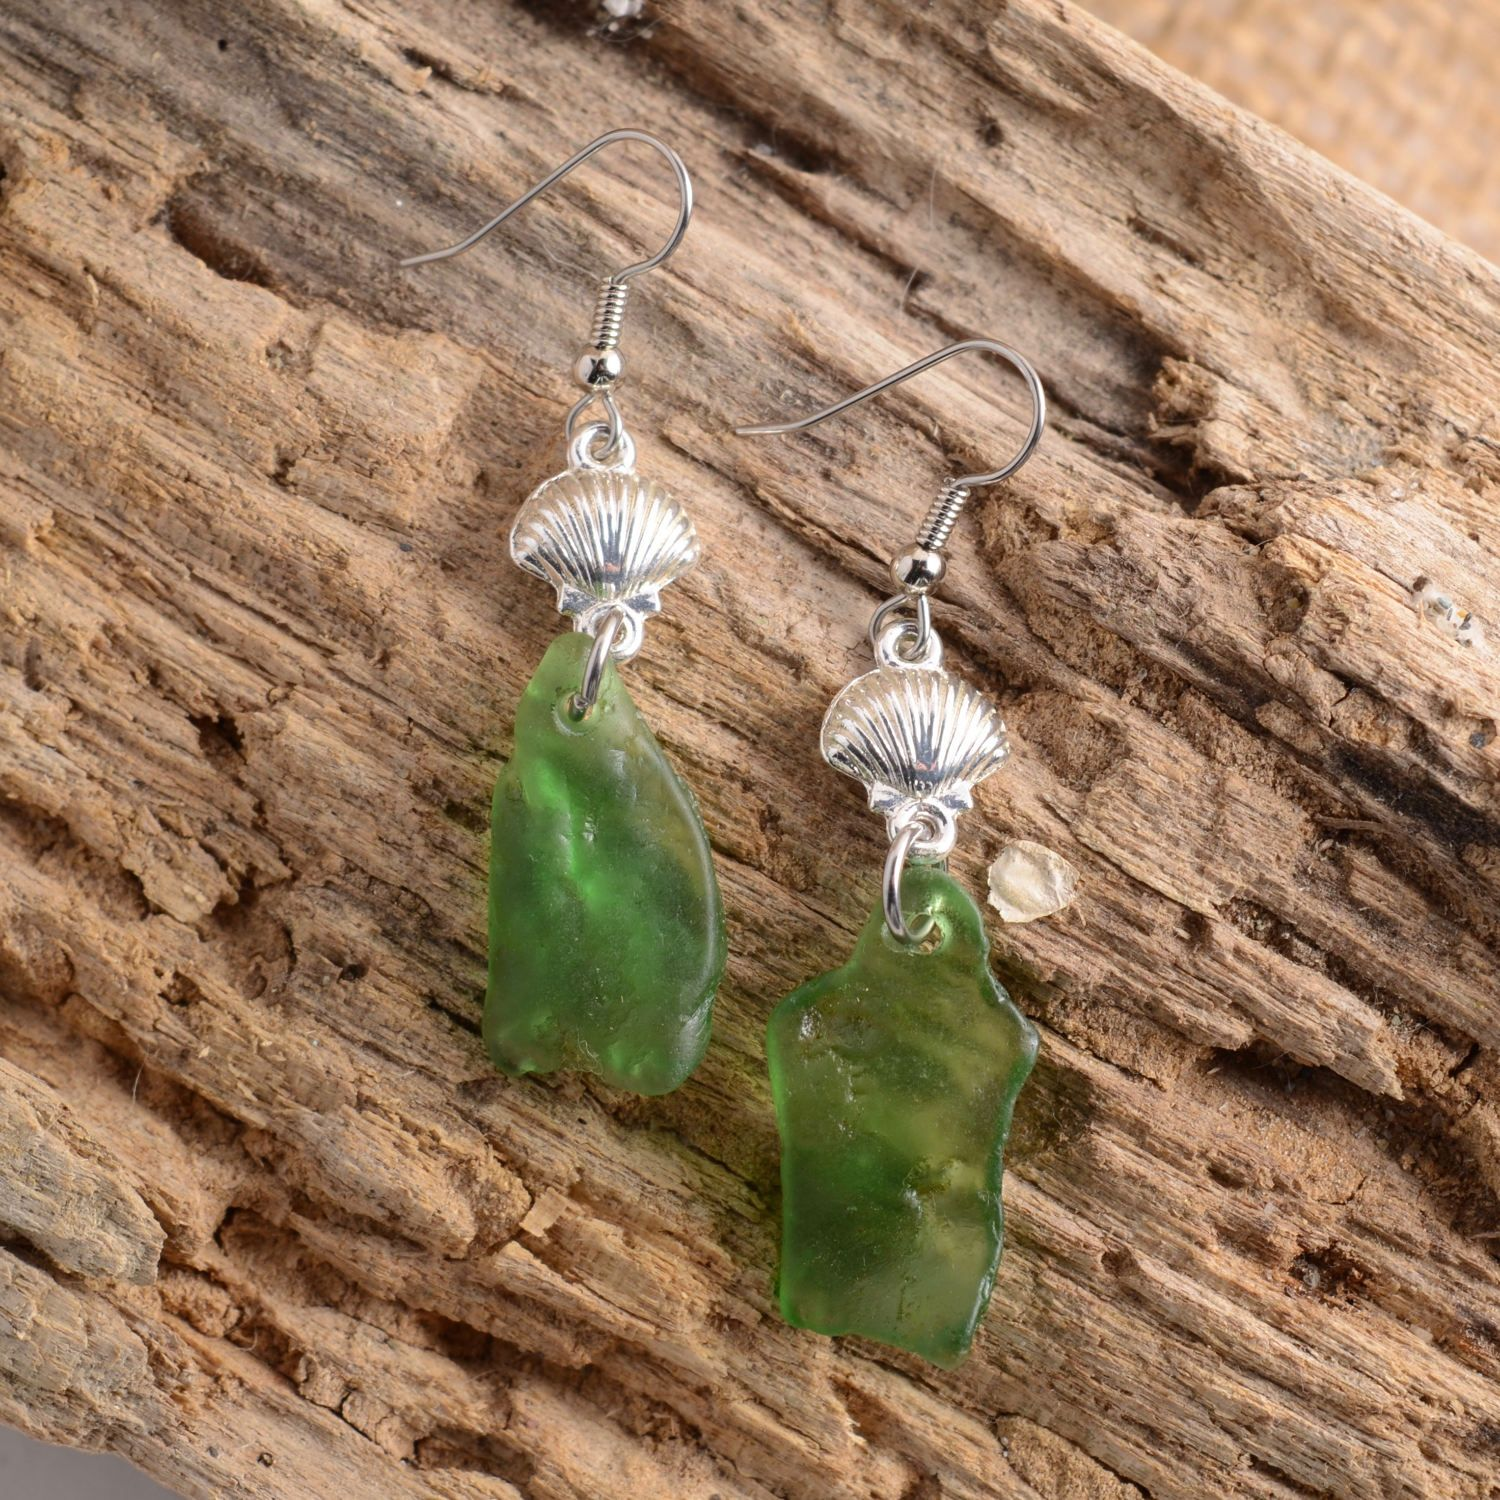 Rhode Island Soda Bottle Green Bonfire Sea Glass With Silver Shell Wiring Connectors Your Choice Of Sterling Or Stainless Steel Ear Wires